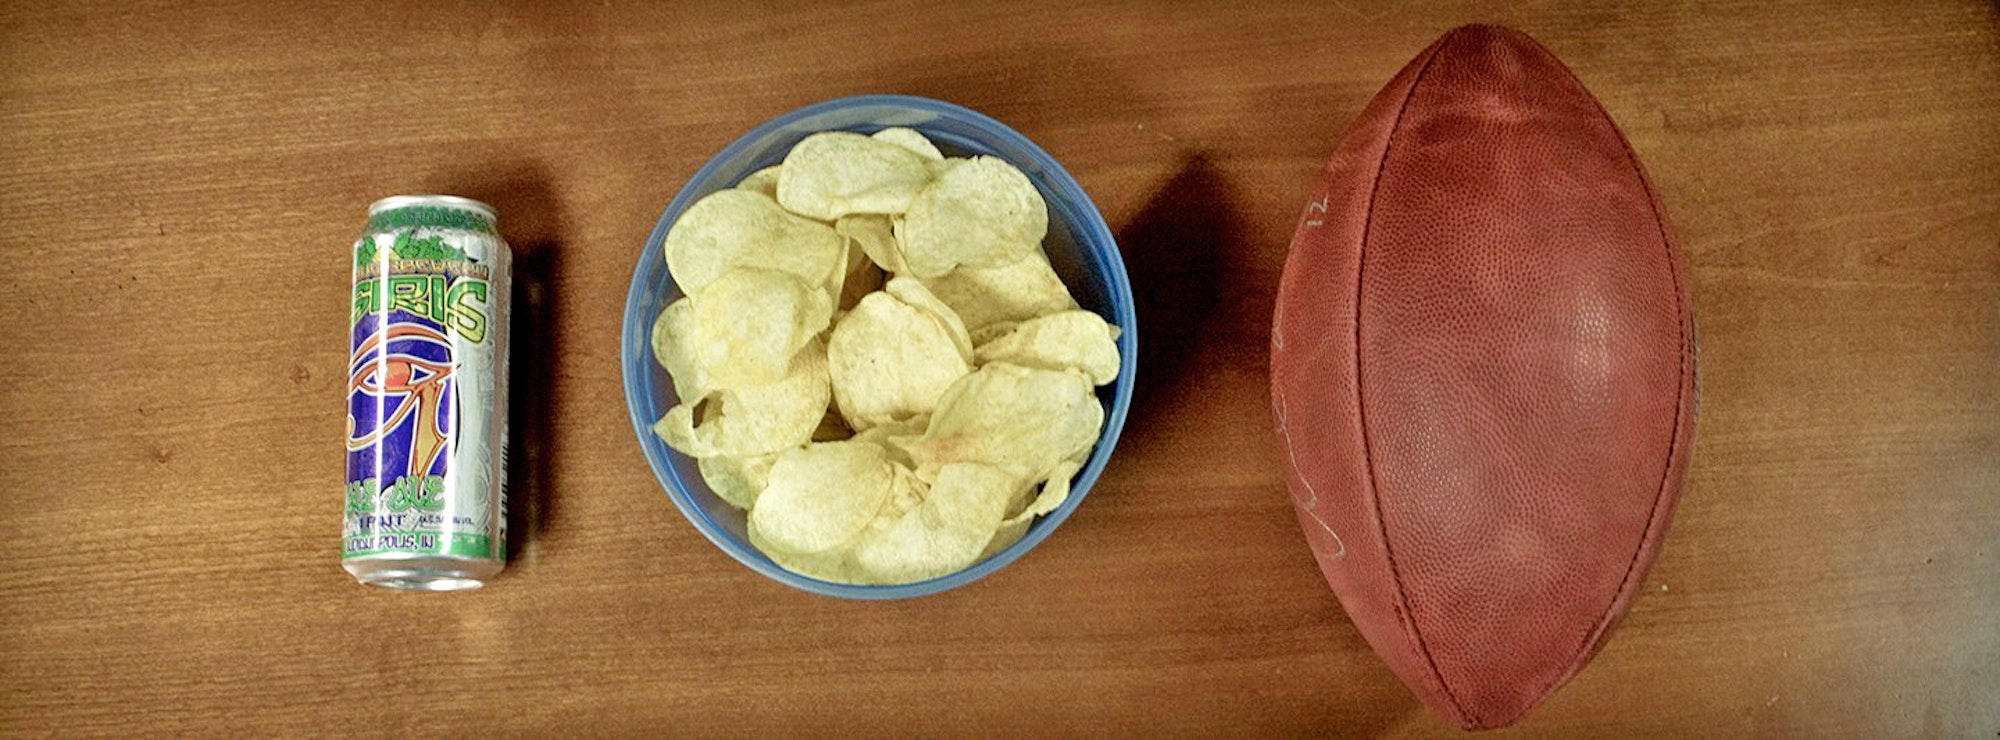 Beer, bowl of chips, and a football on a table